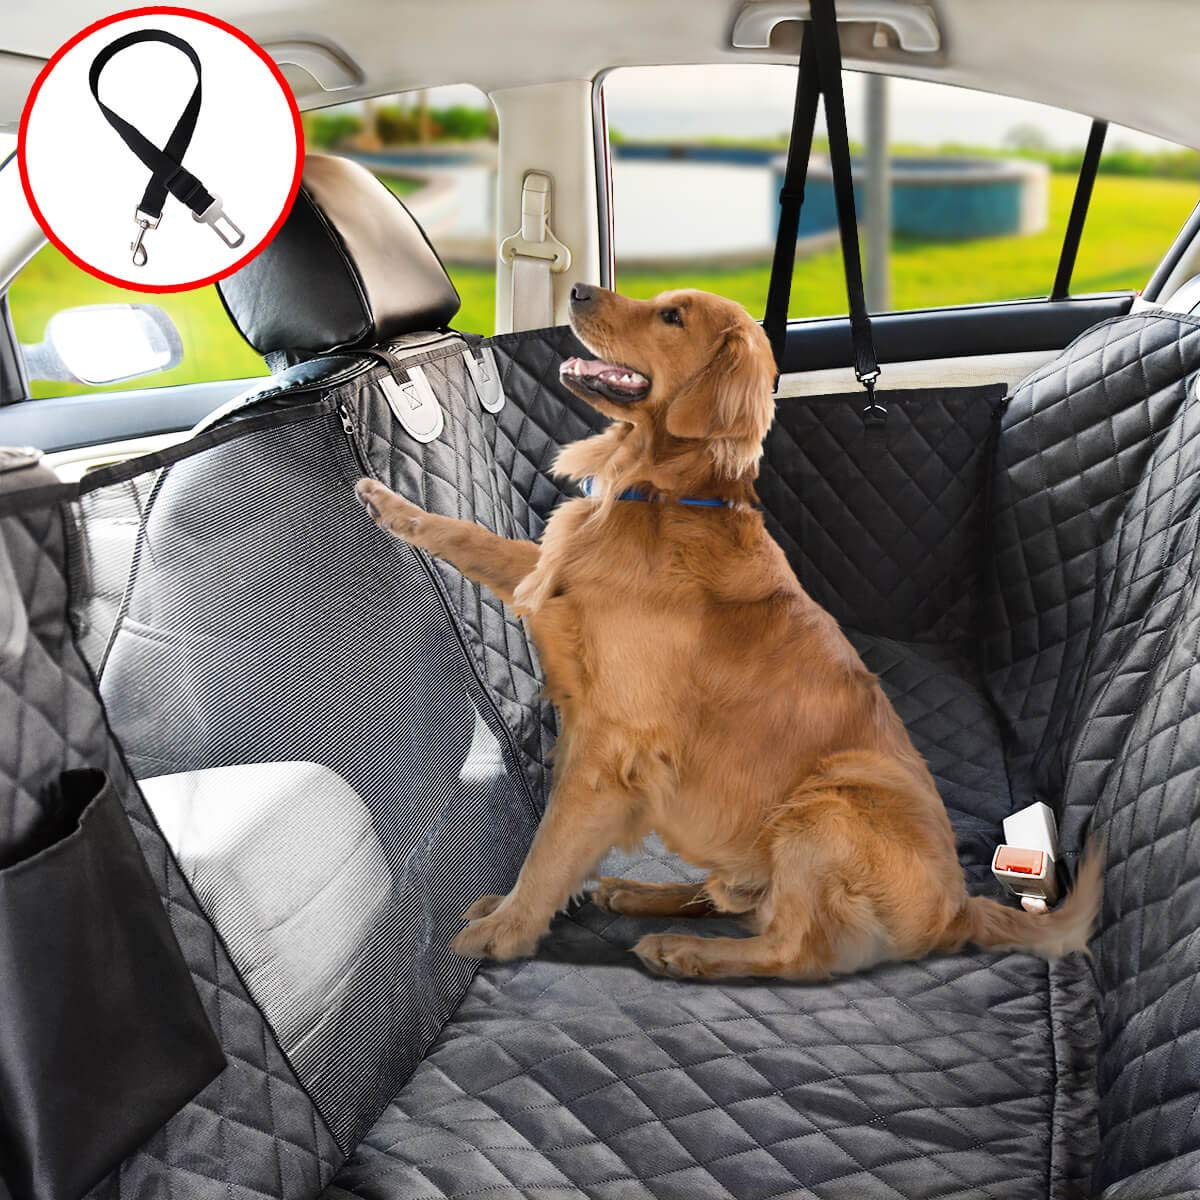 Vailge Dog Seat Cover for Back Seat, 100% Waterproof Dog Car Seat Covers with Mesh Window, Scratch Proof Nonslip Dog Car Hammock, Car Seat Covers for Dogs Backseat for Trucks SUV 64 x 62 in